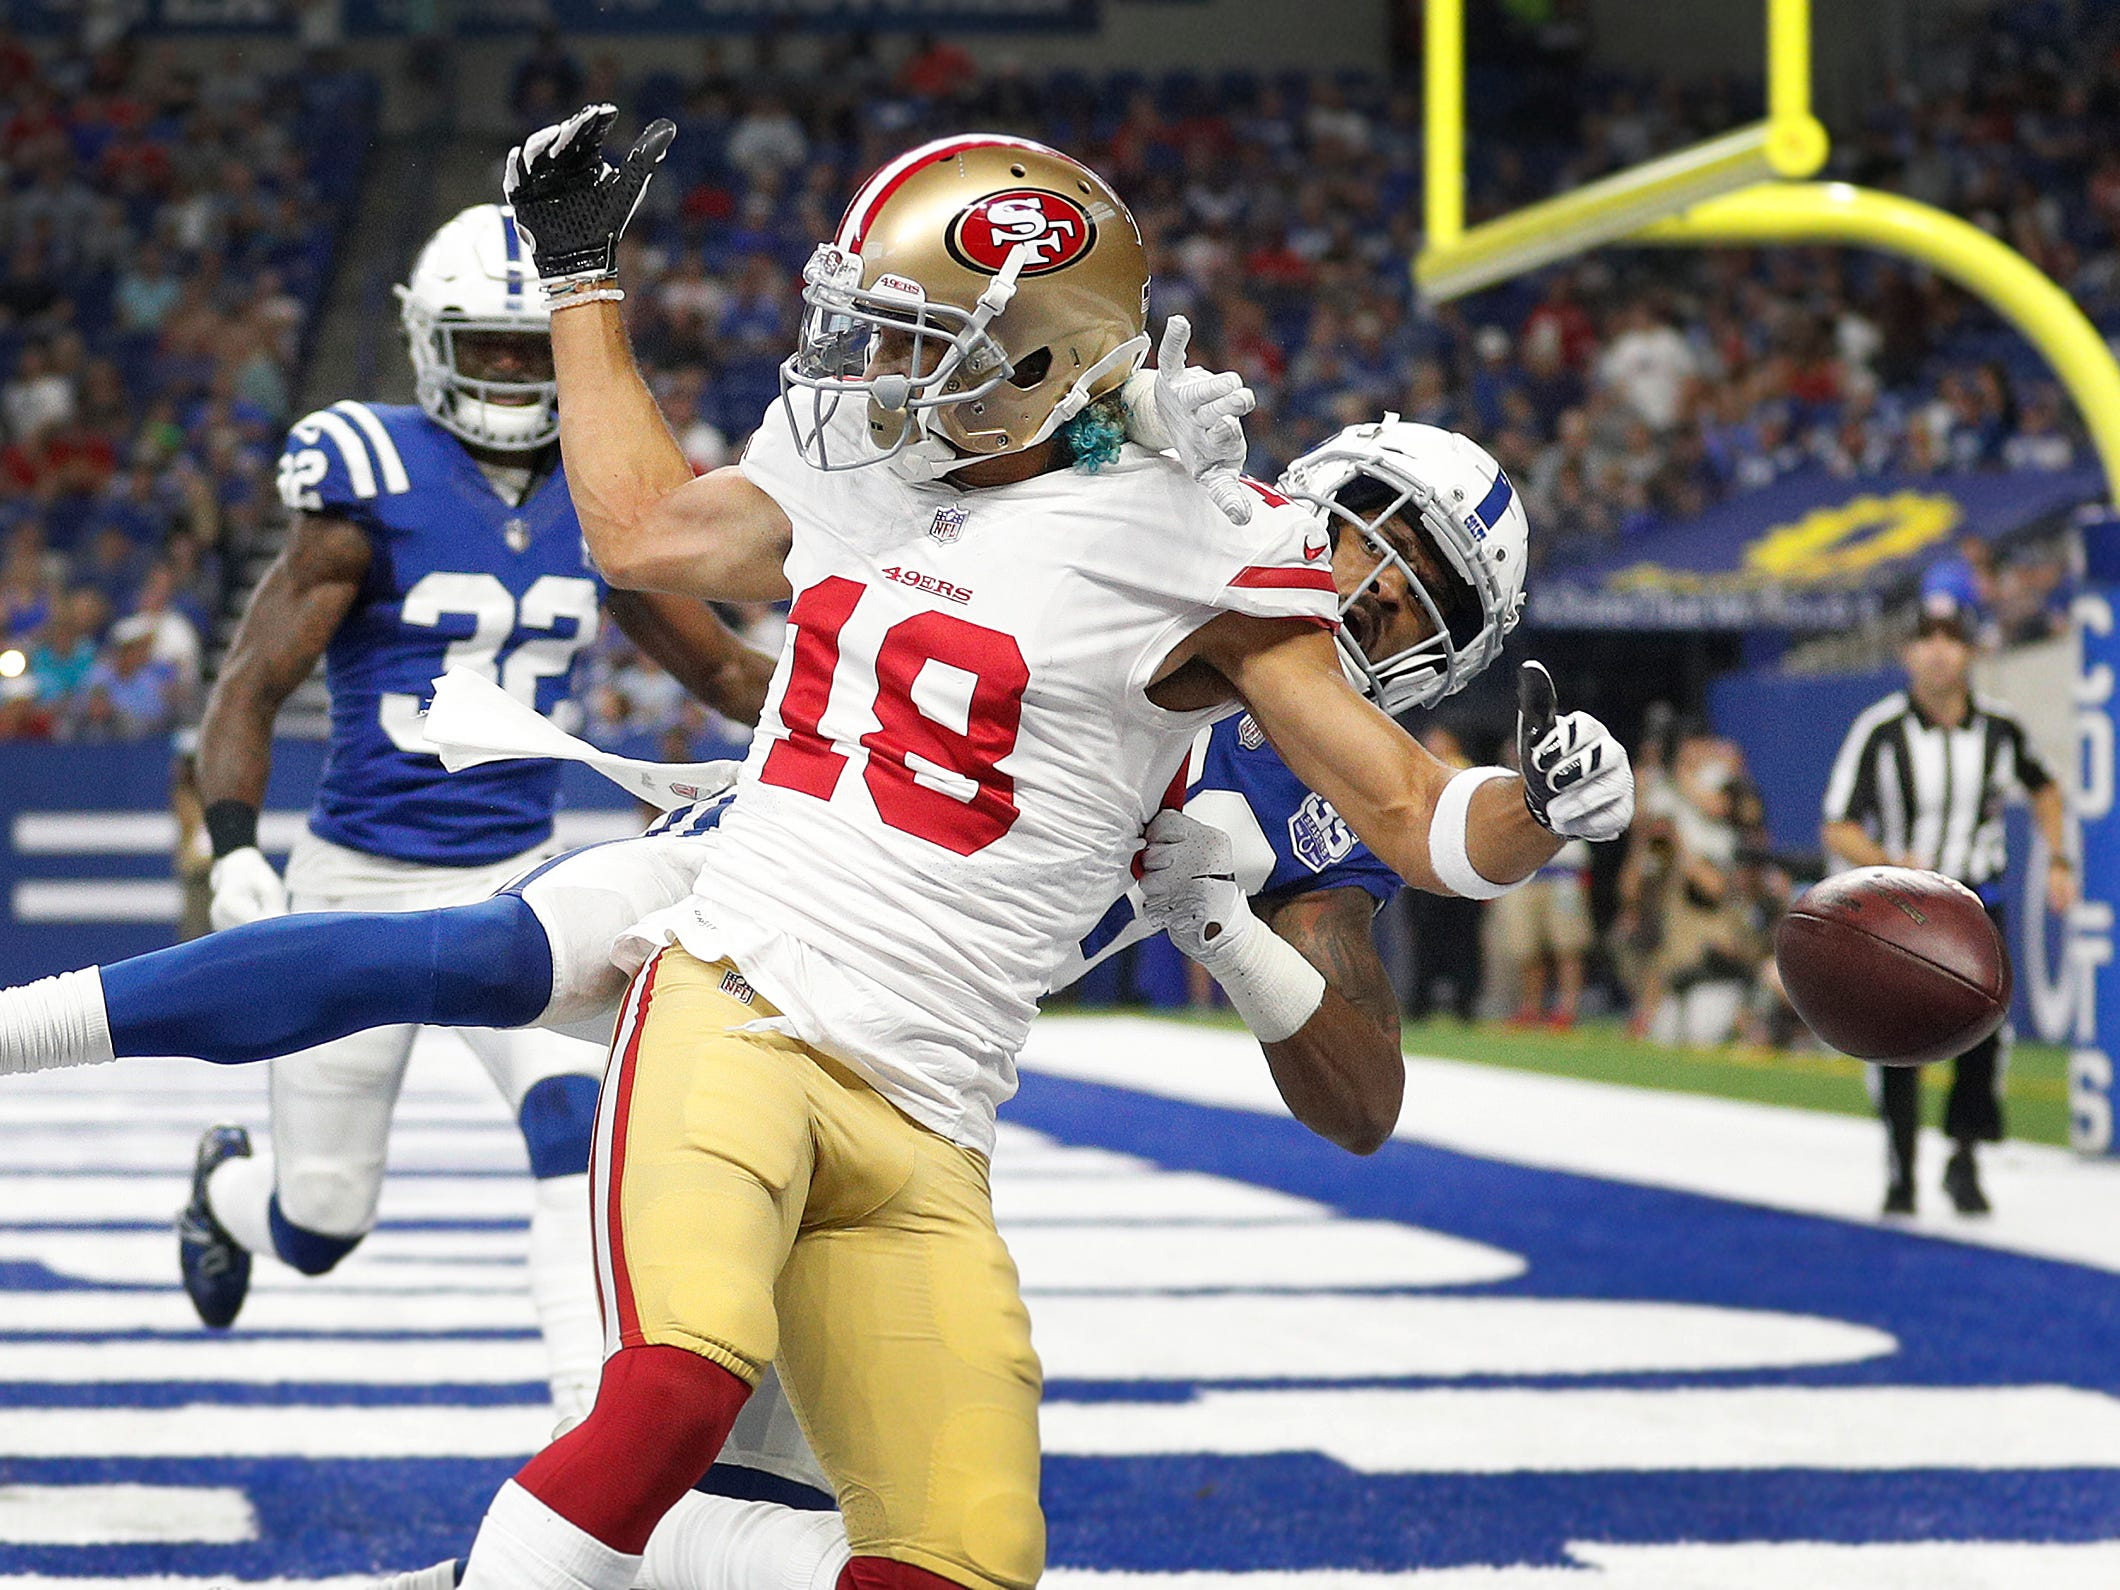 Indianapolis Colts cornerback Chris Milton (28) breaks up the pass intended for San Francisco 49ers wide receiver Dante Pettis (18) in the second half of their preseason football game at Lucas Oil Stadium Saturday, August 25, 2018. The Colts defeated the 49ers 23-17.